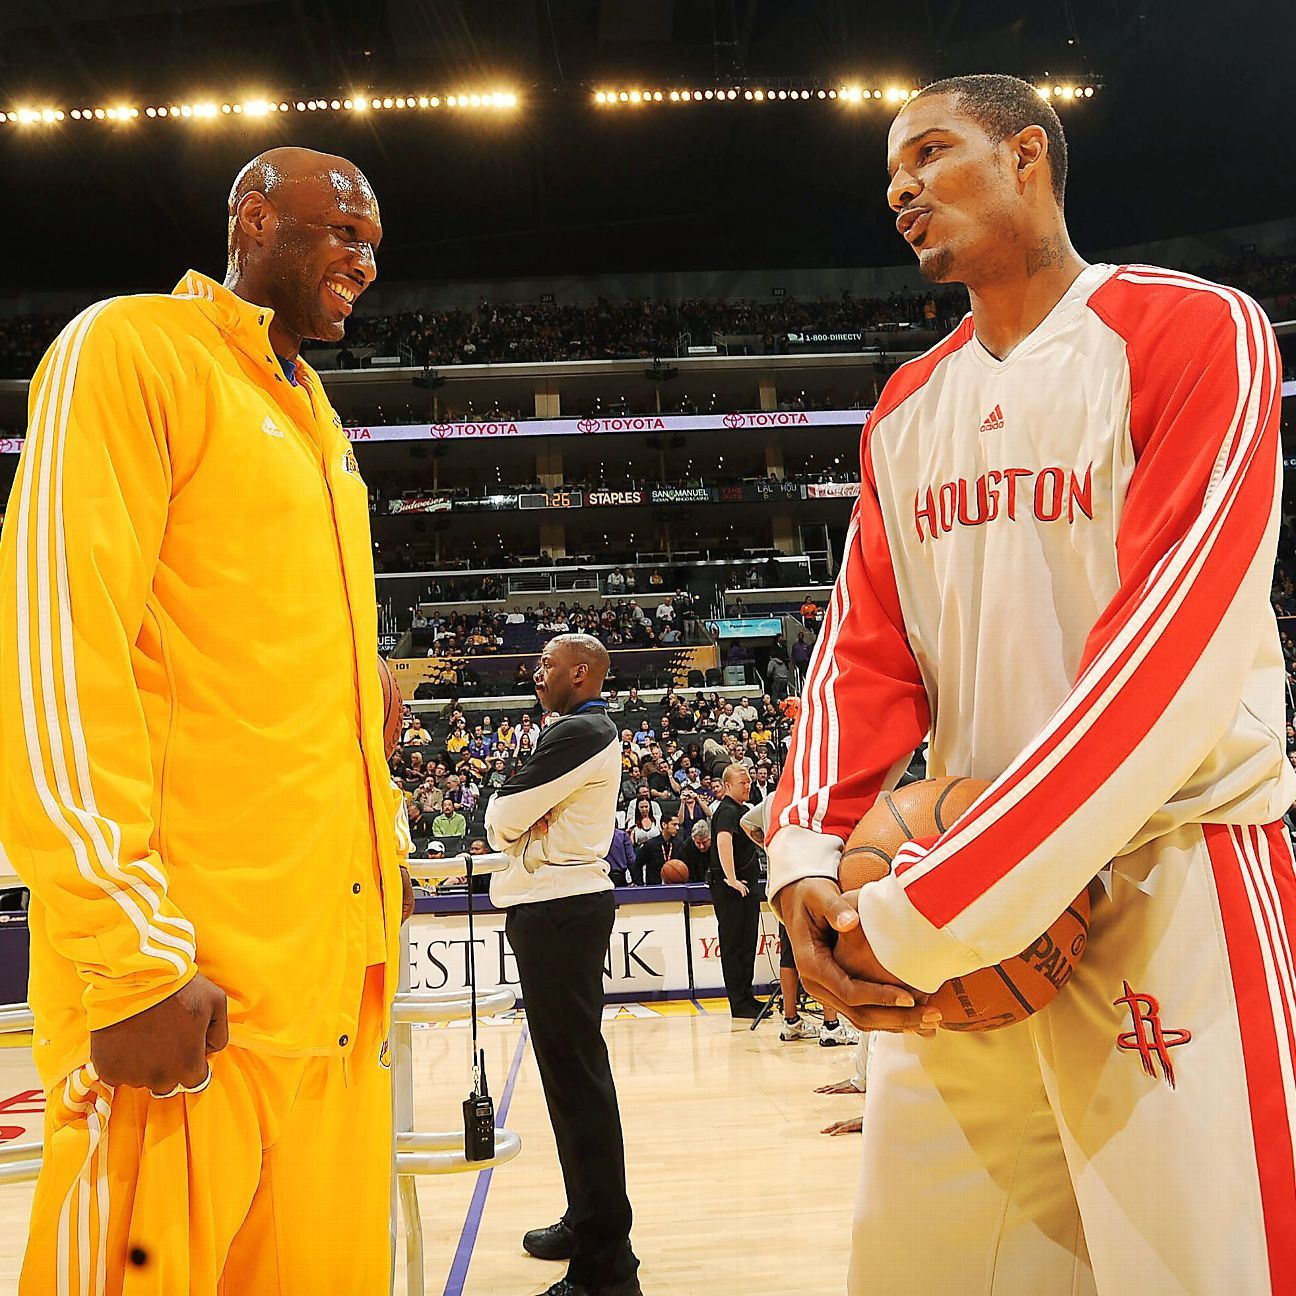 Houston Rockets Where To Watch The Upcoming Match Espn: Trevor Ariza Visits Lamar Odom